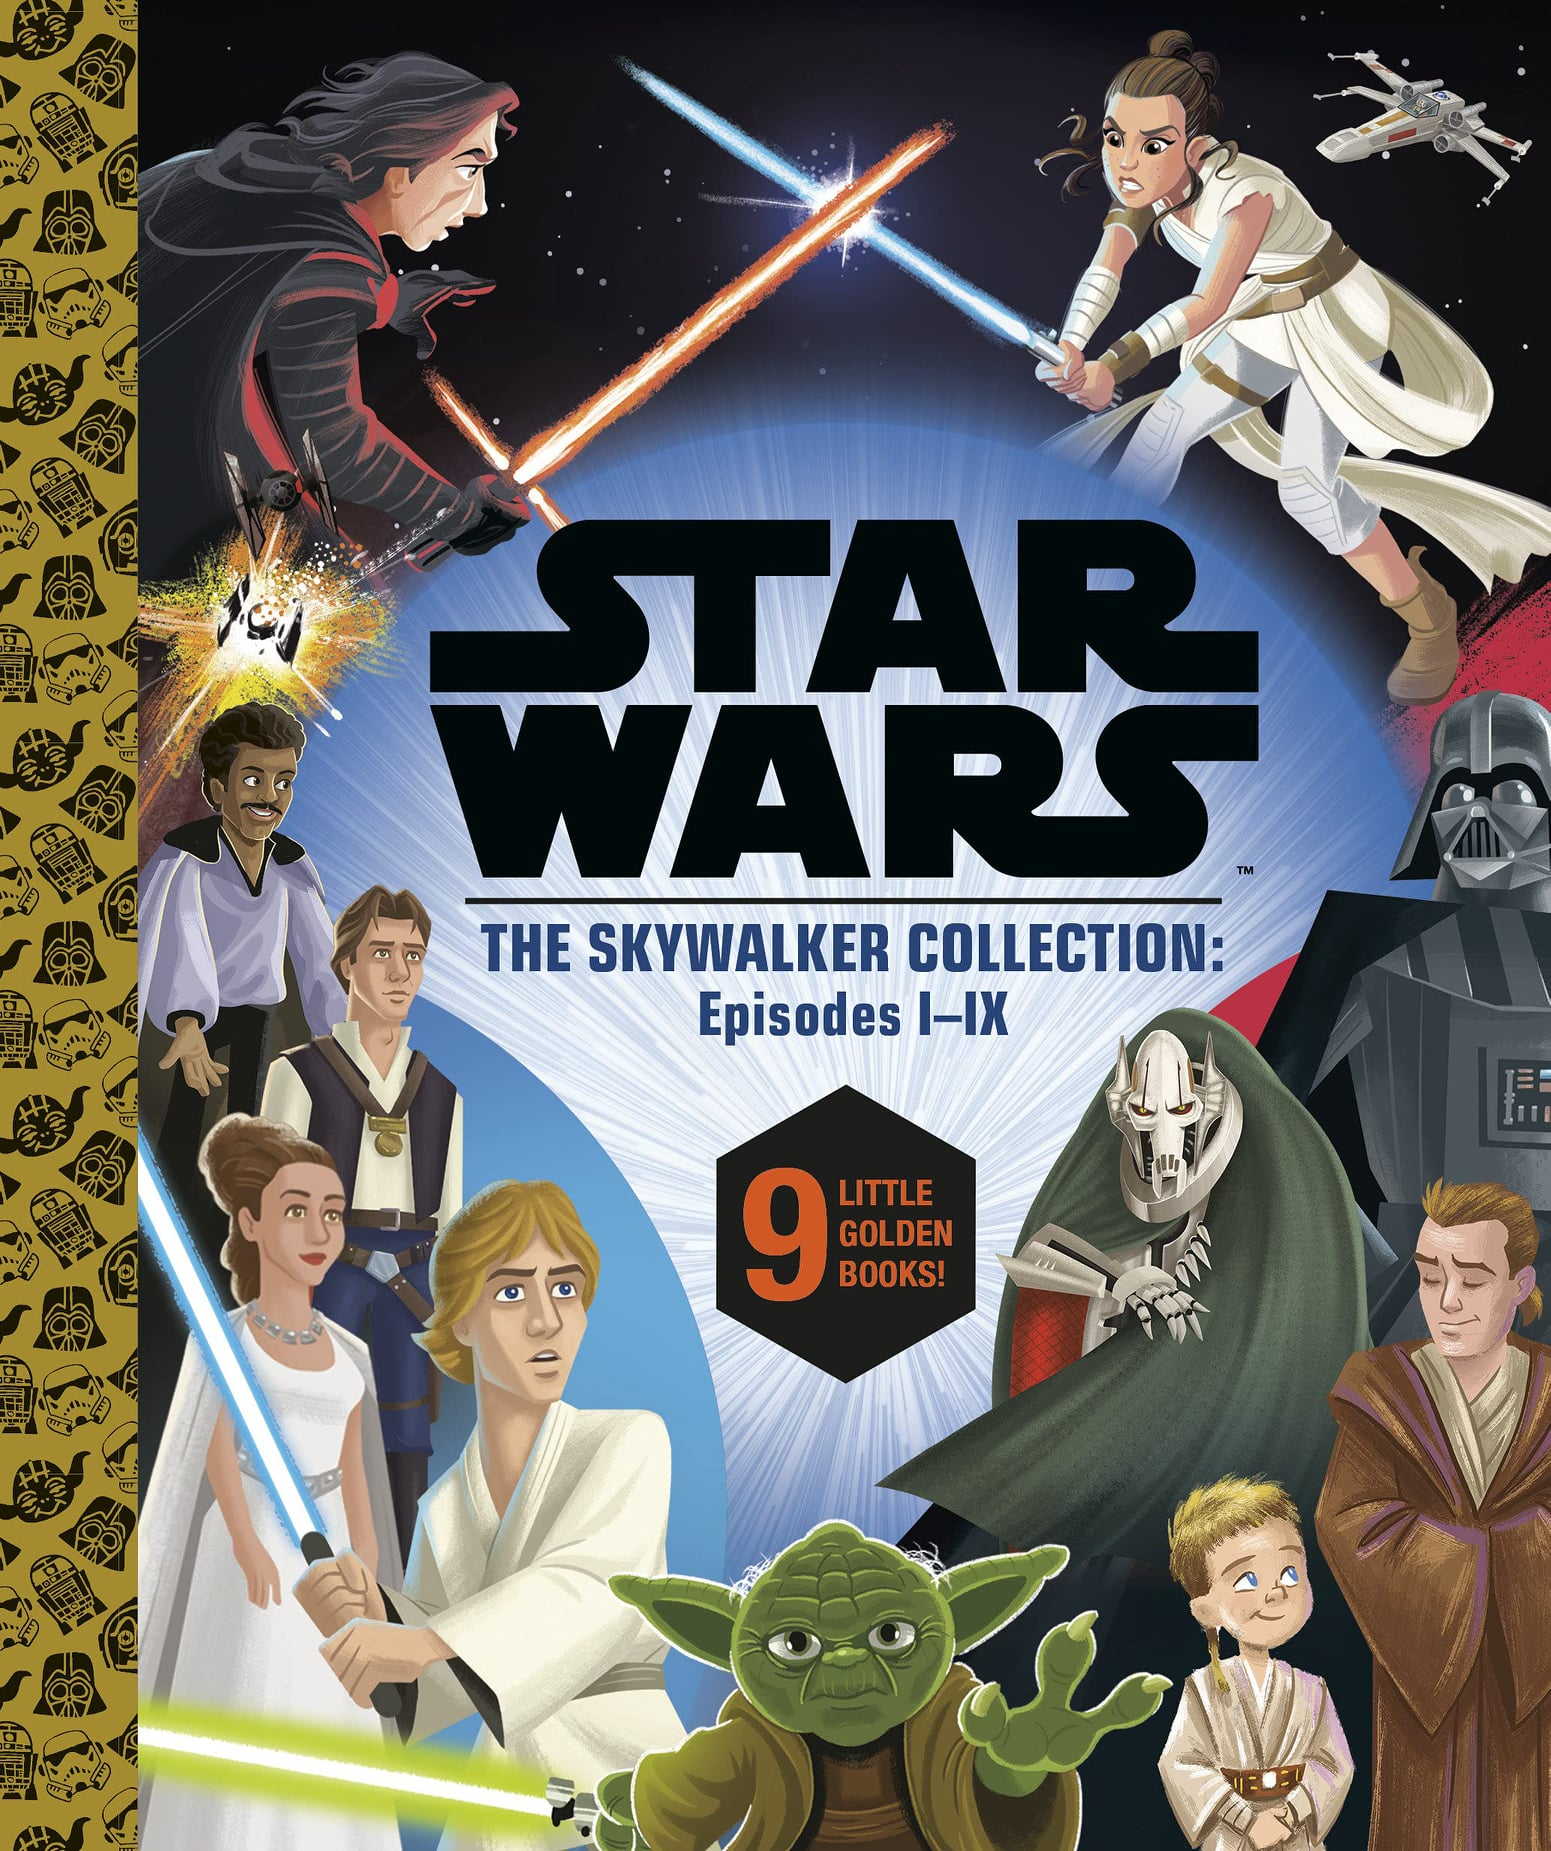 Star Wars: The Skywalker Collection